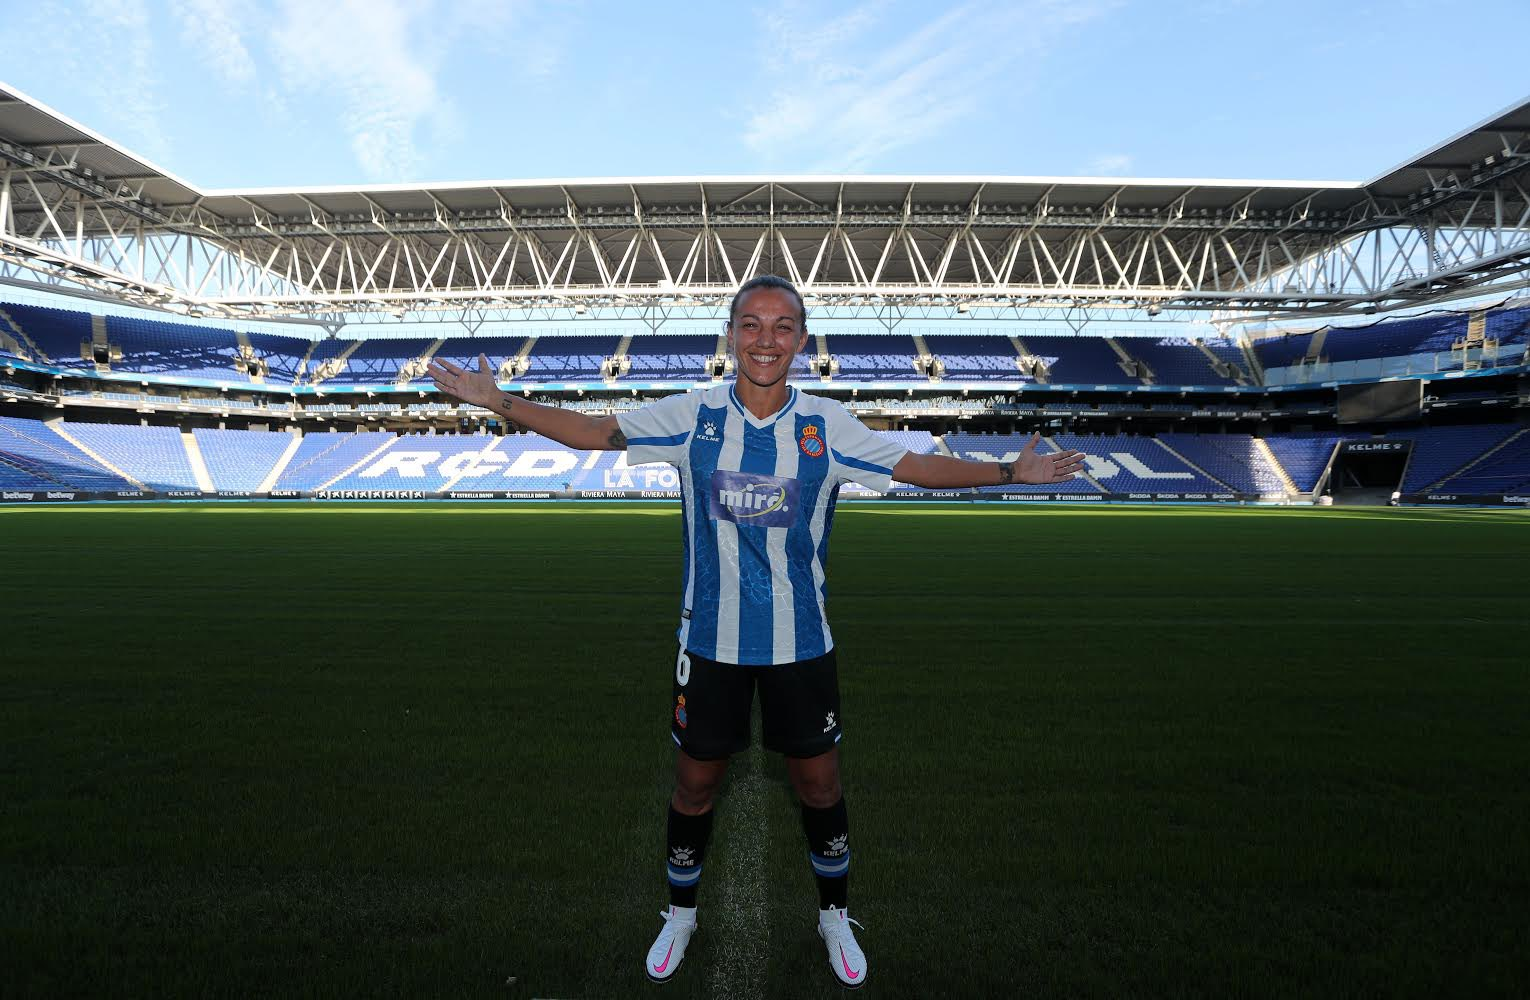 Anair Lomba, xogadora do Espanyol - AL